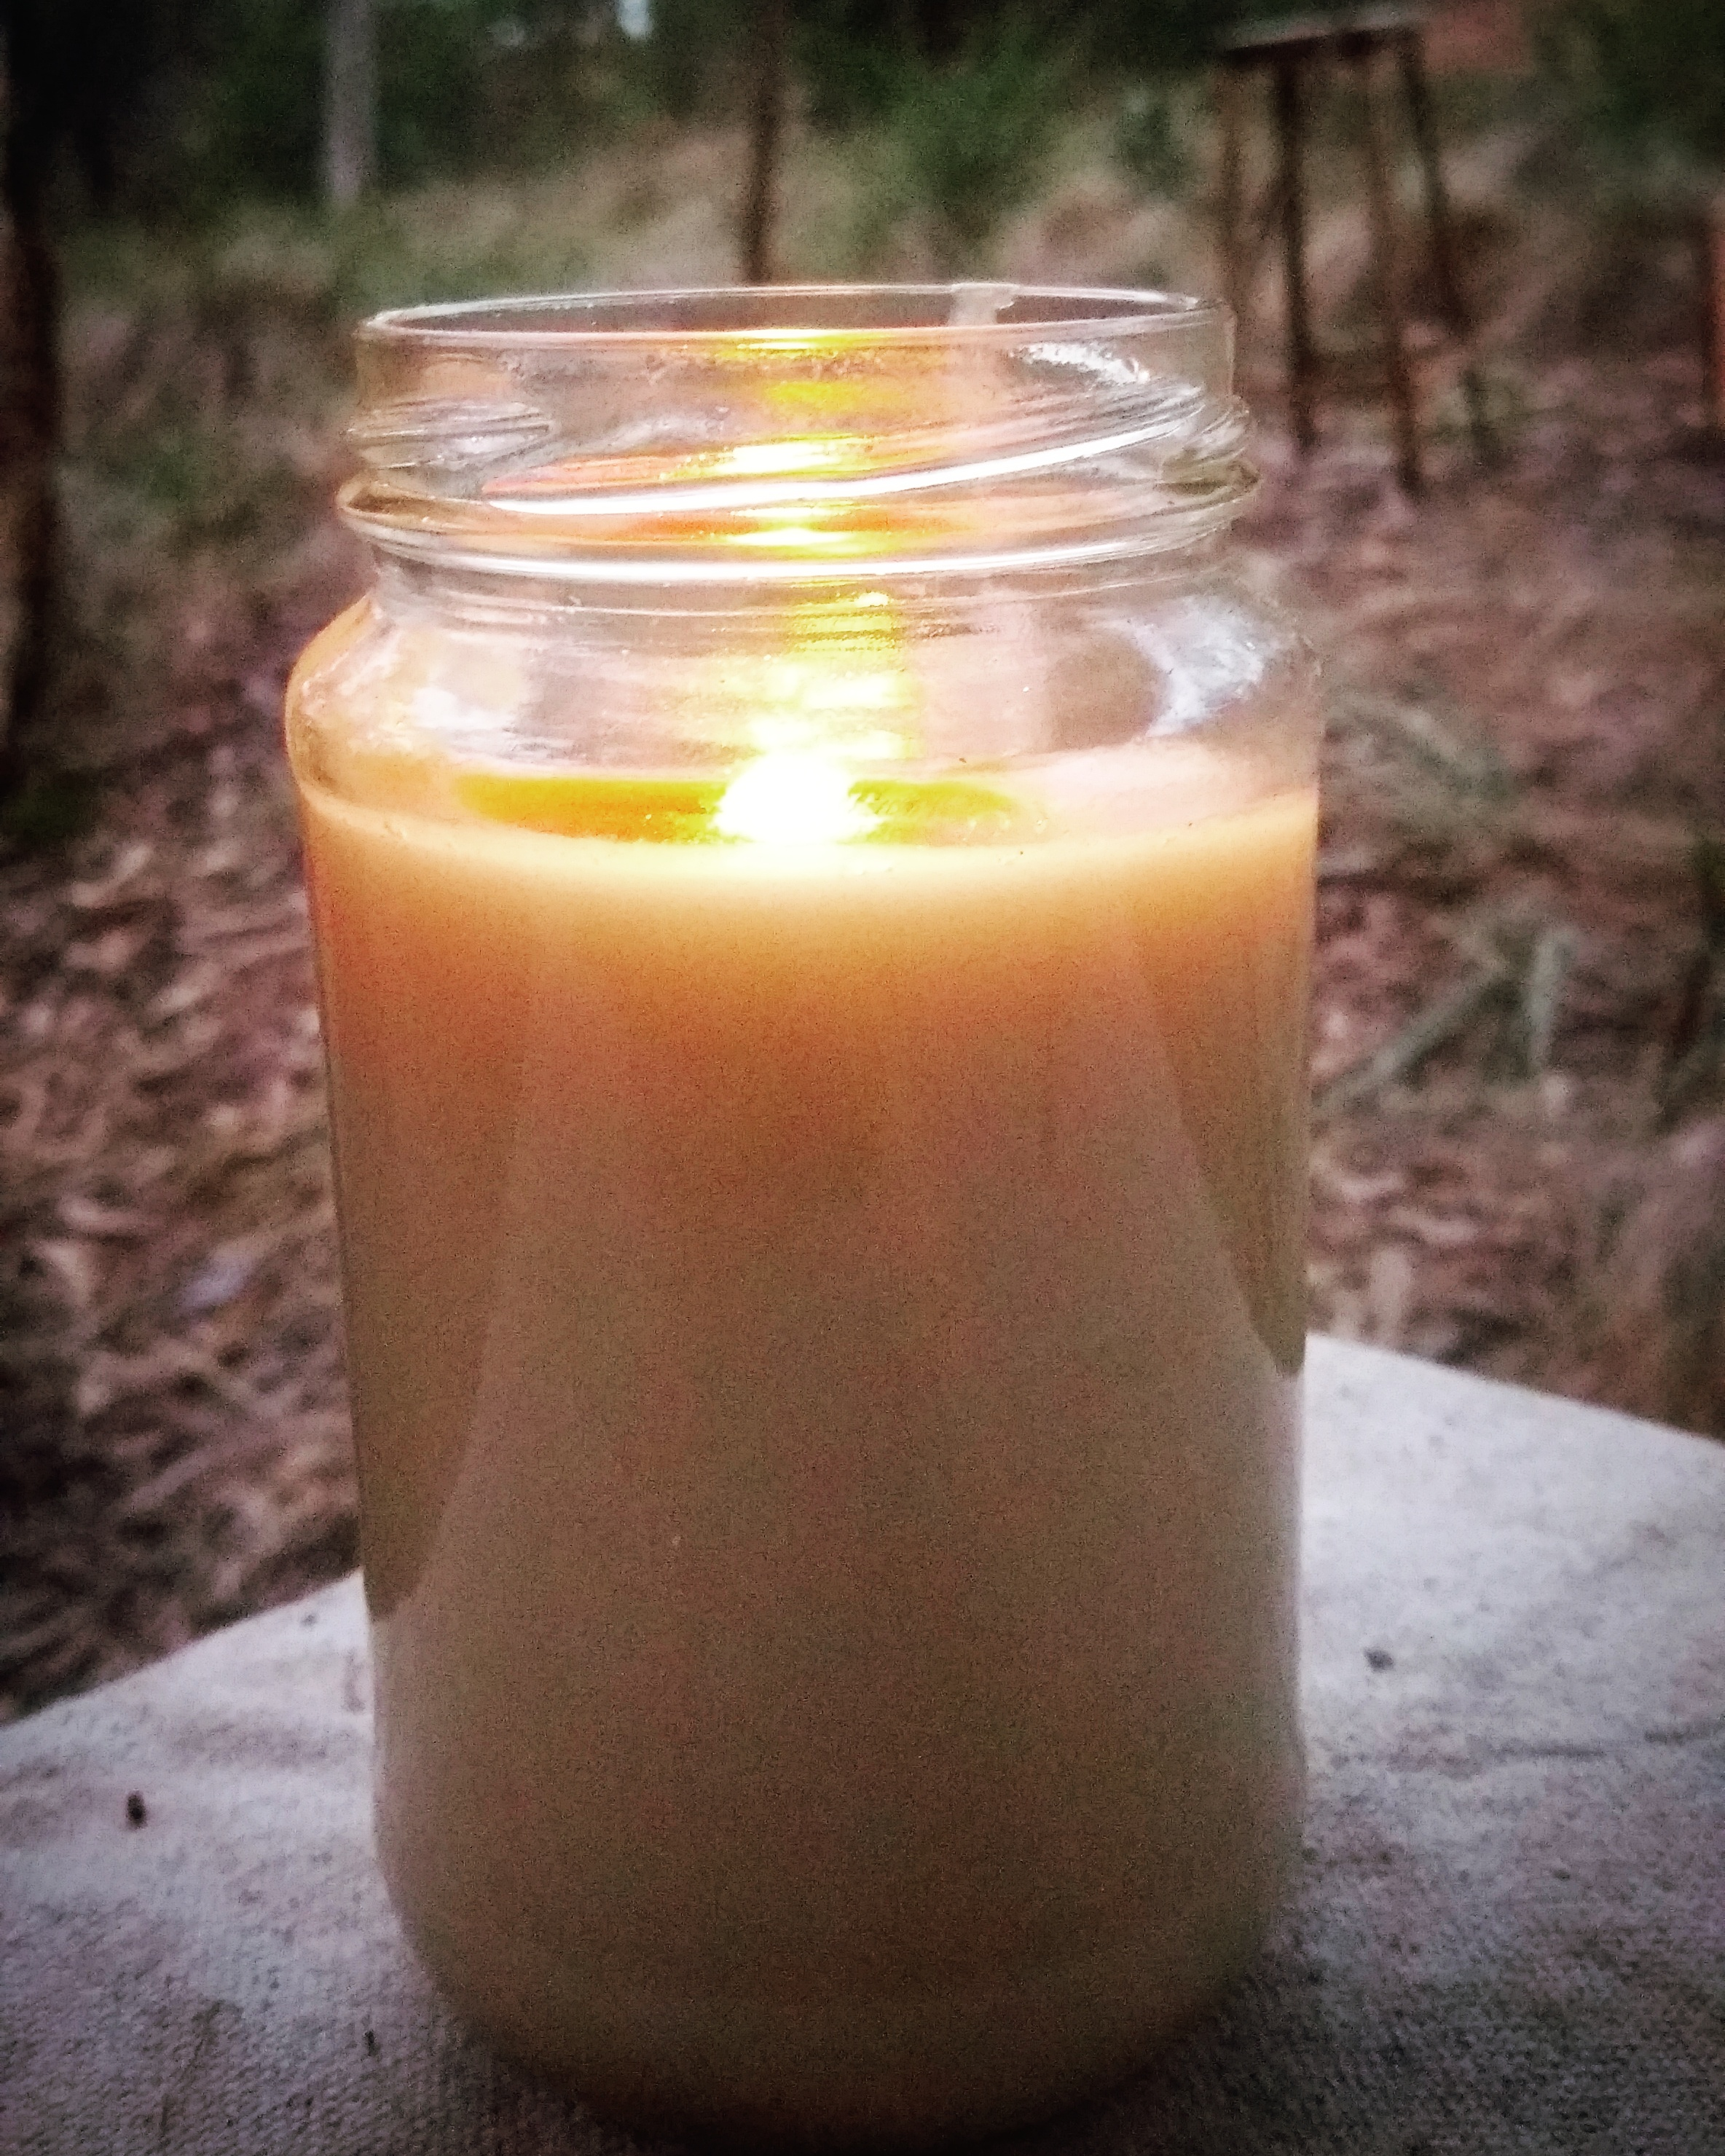 Pictured: A fat candle made from tallow (sheep fat), an hour after it was first lit.